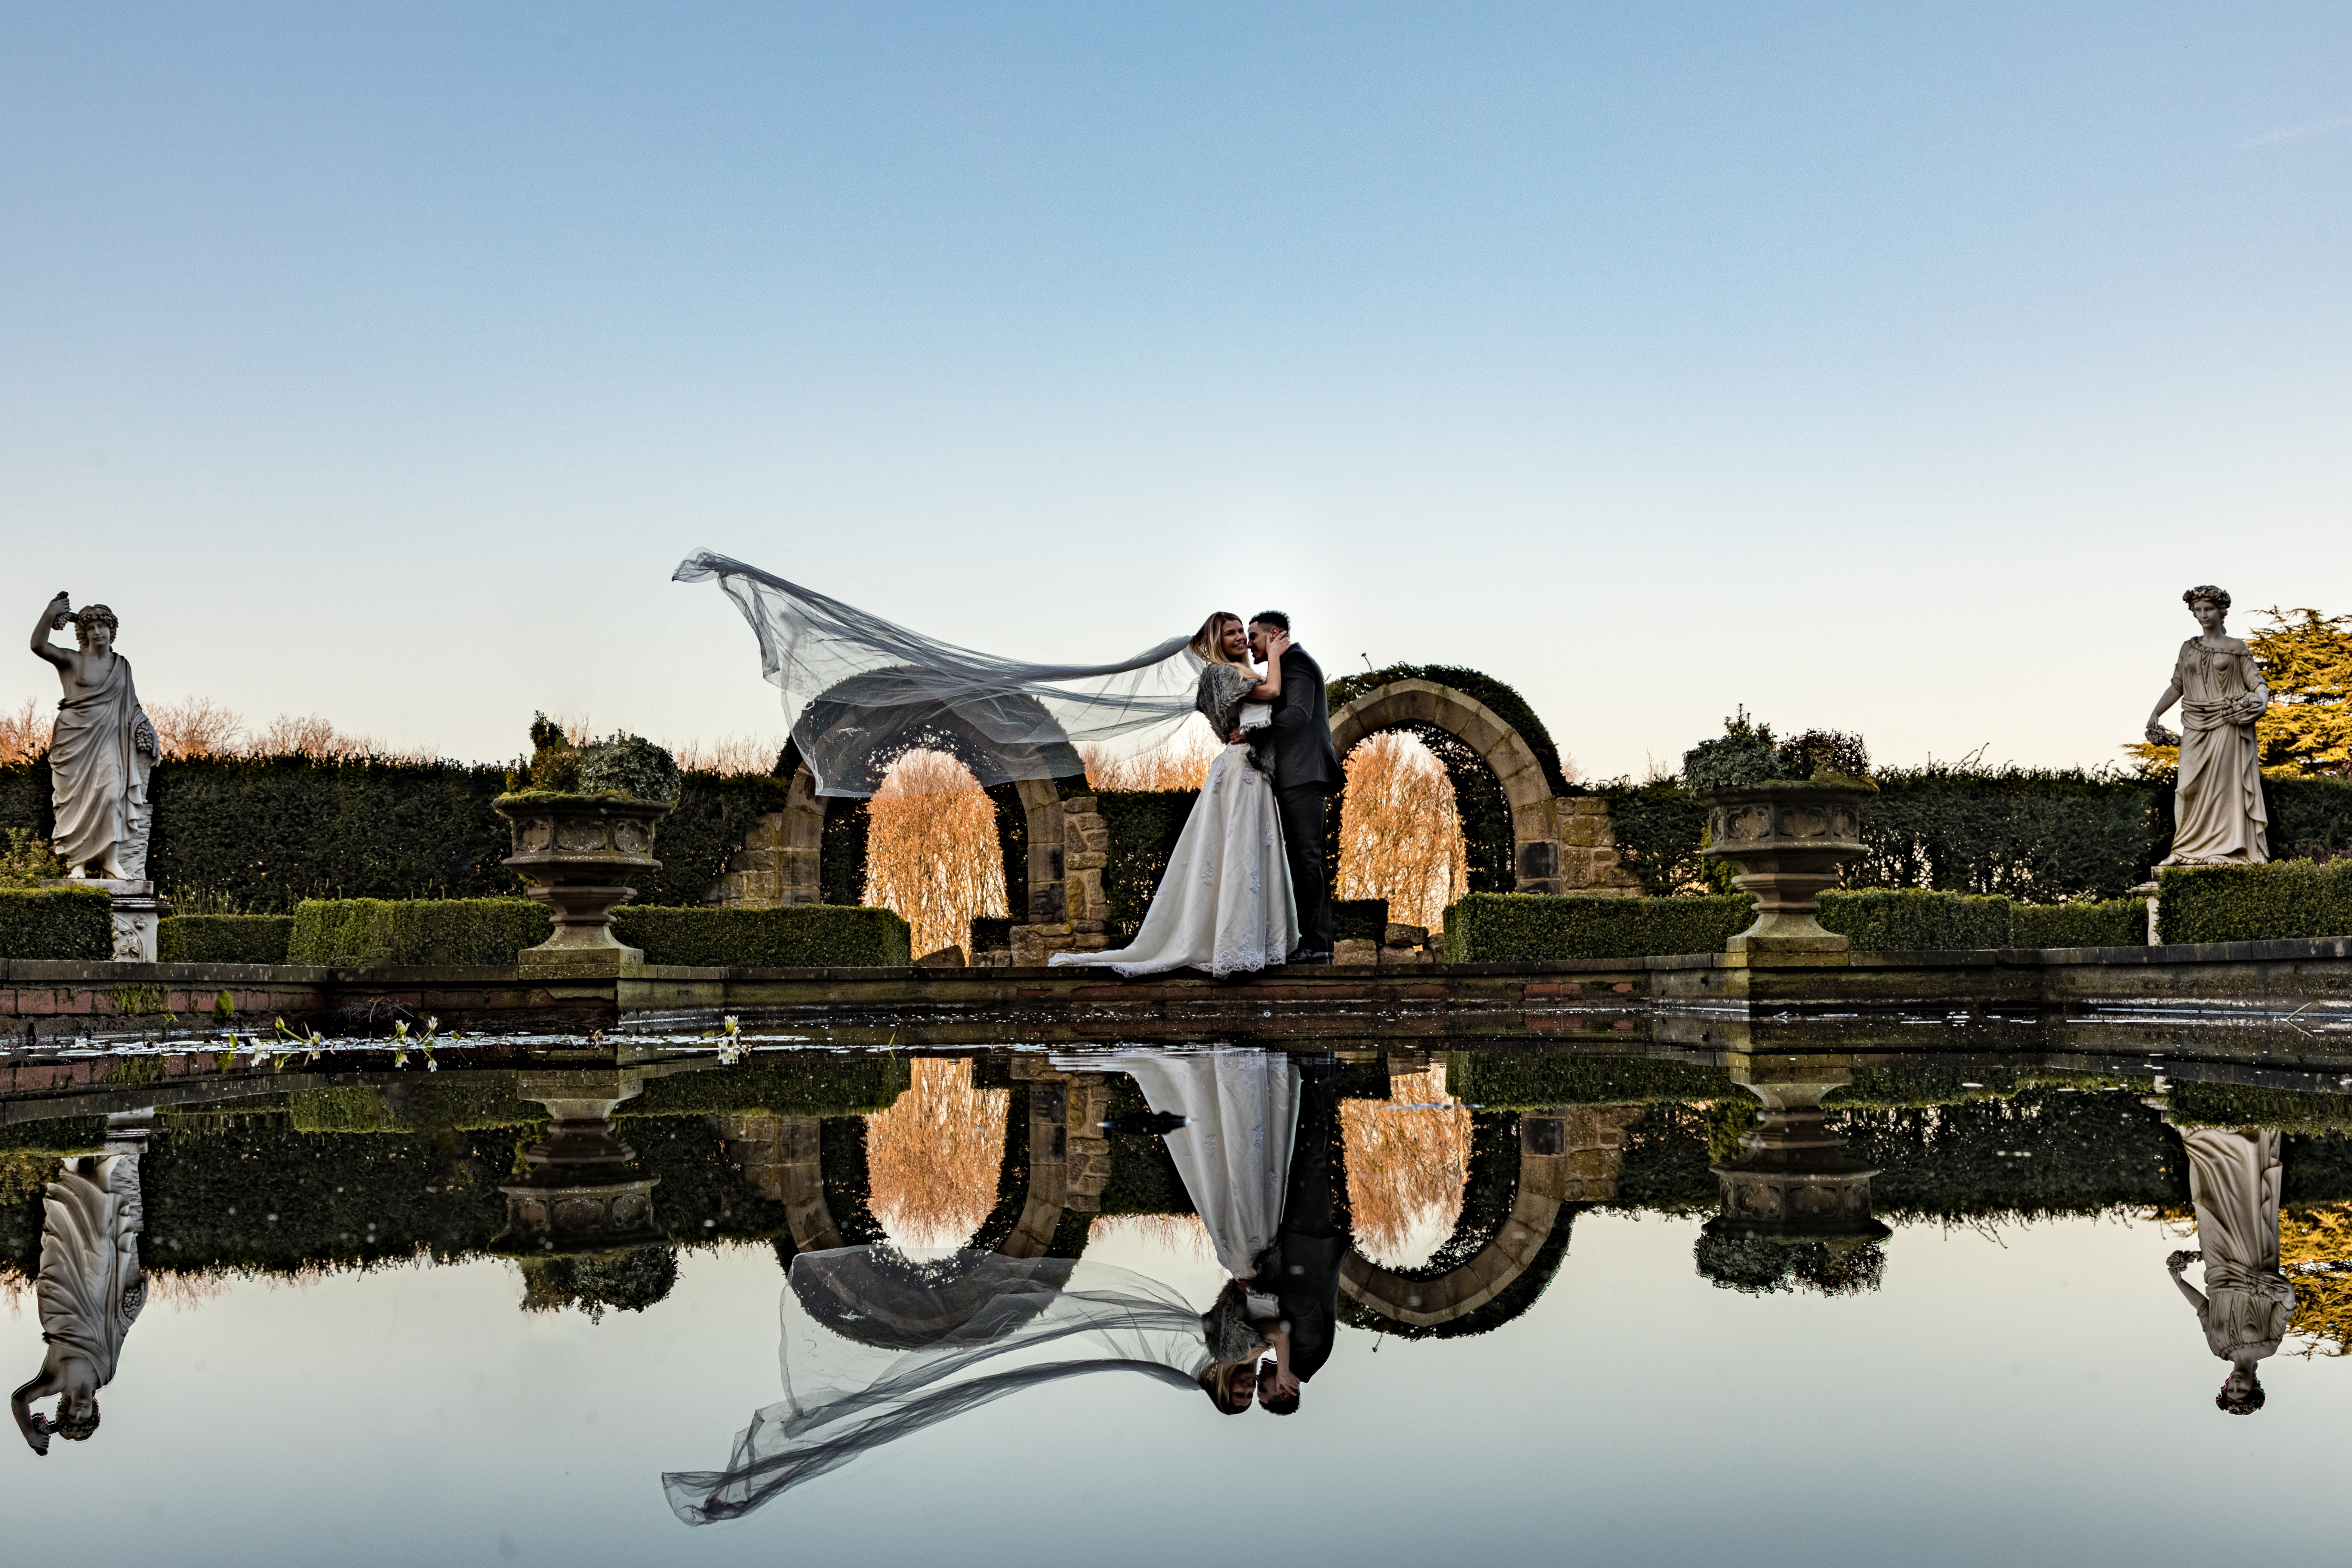 Bride and Groom next to ornamental pond. Embracing and veil moving in wind.